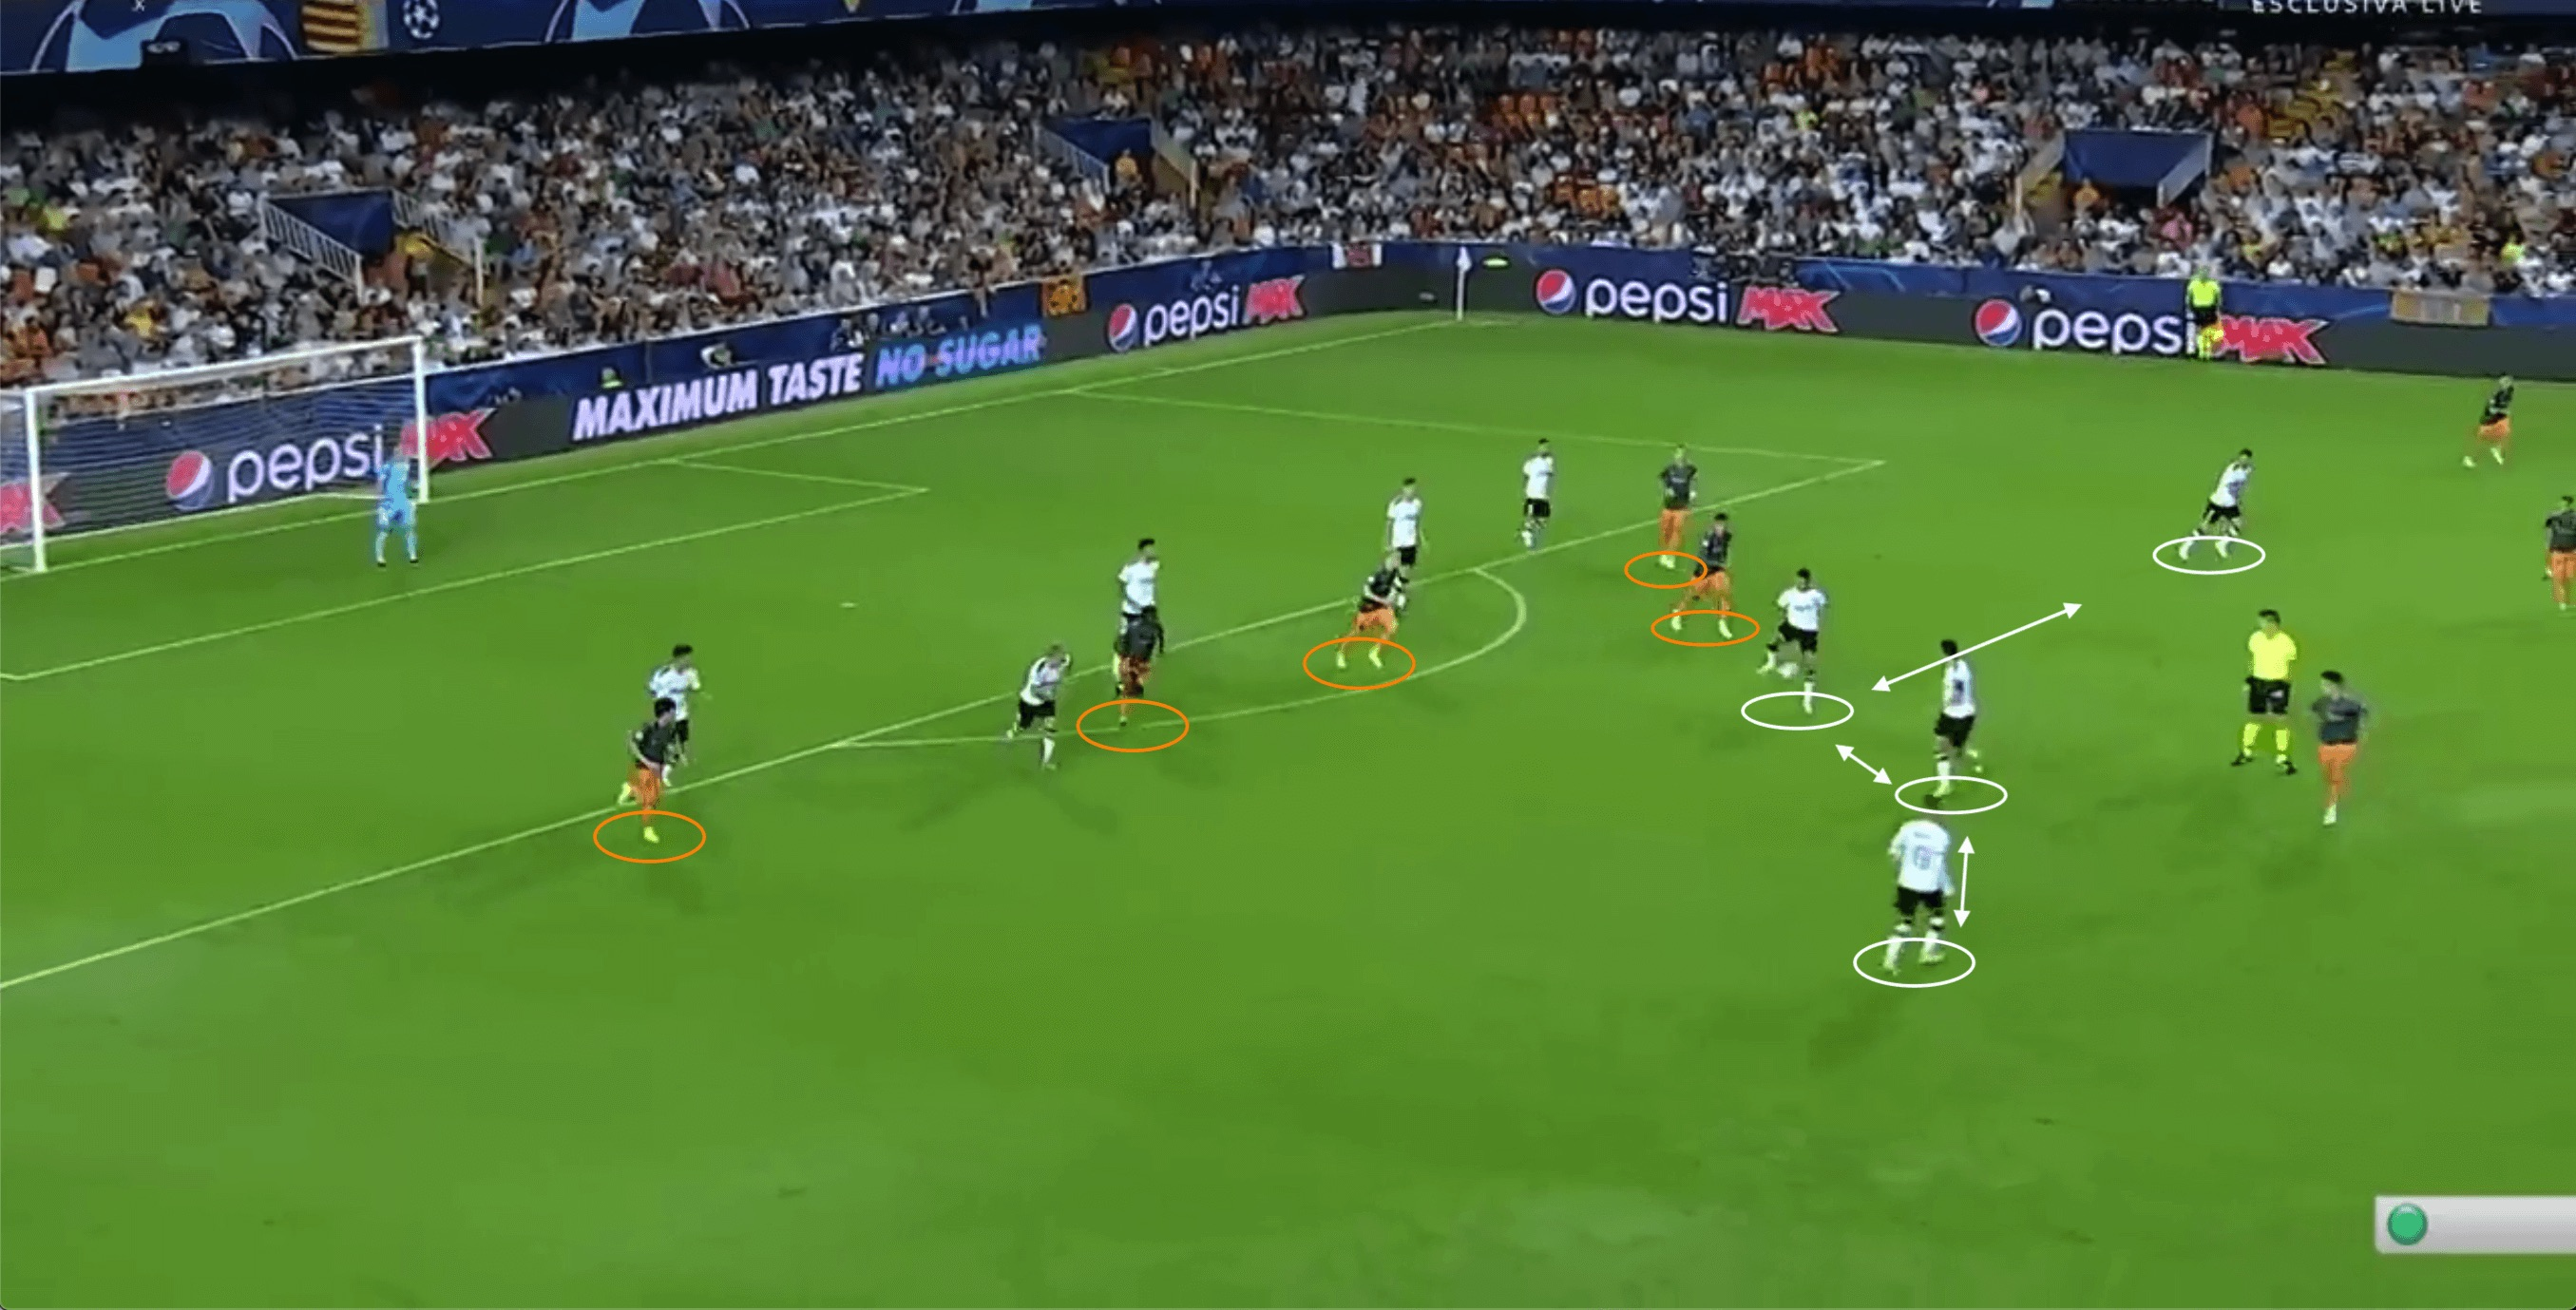 UEFA Champions League 2019/20: Valencia vs Ajax - tactical analysis tactics